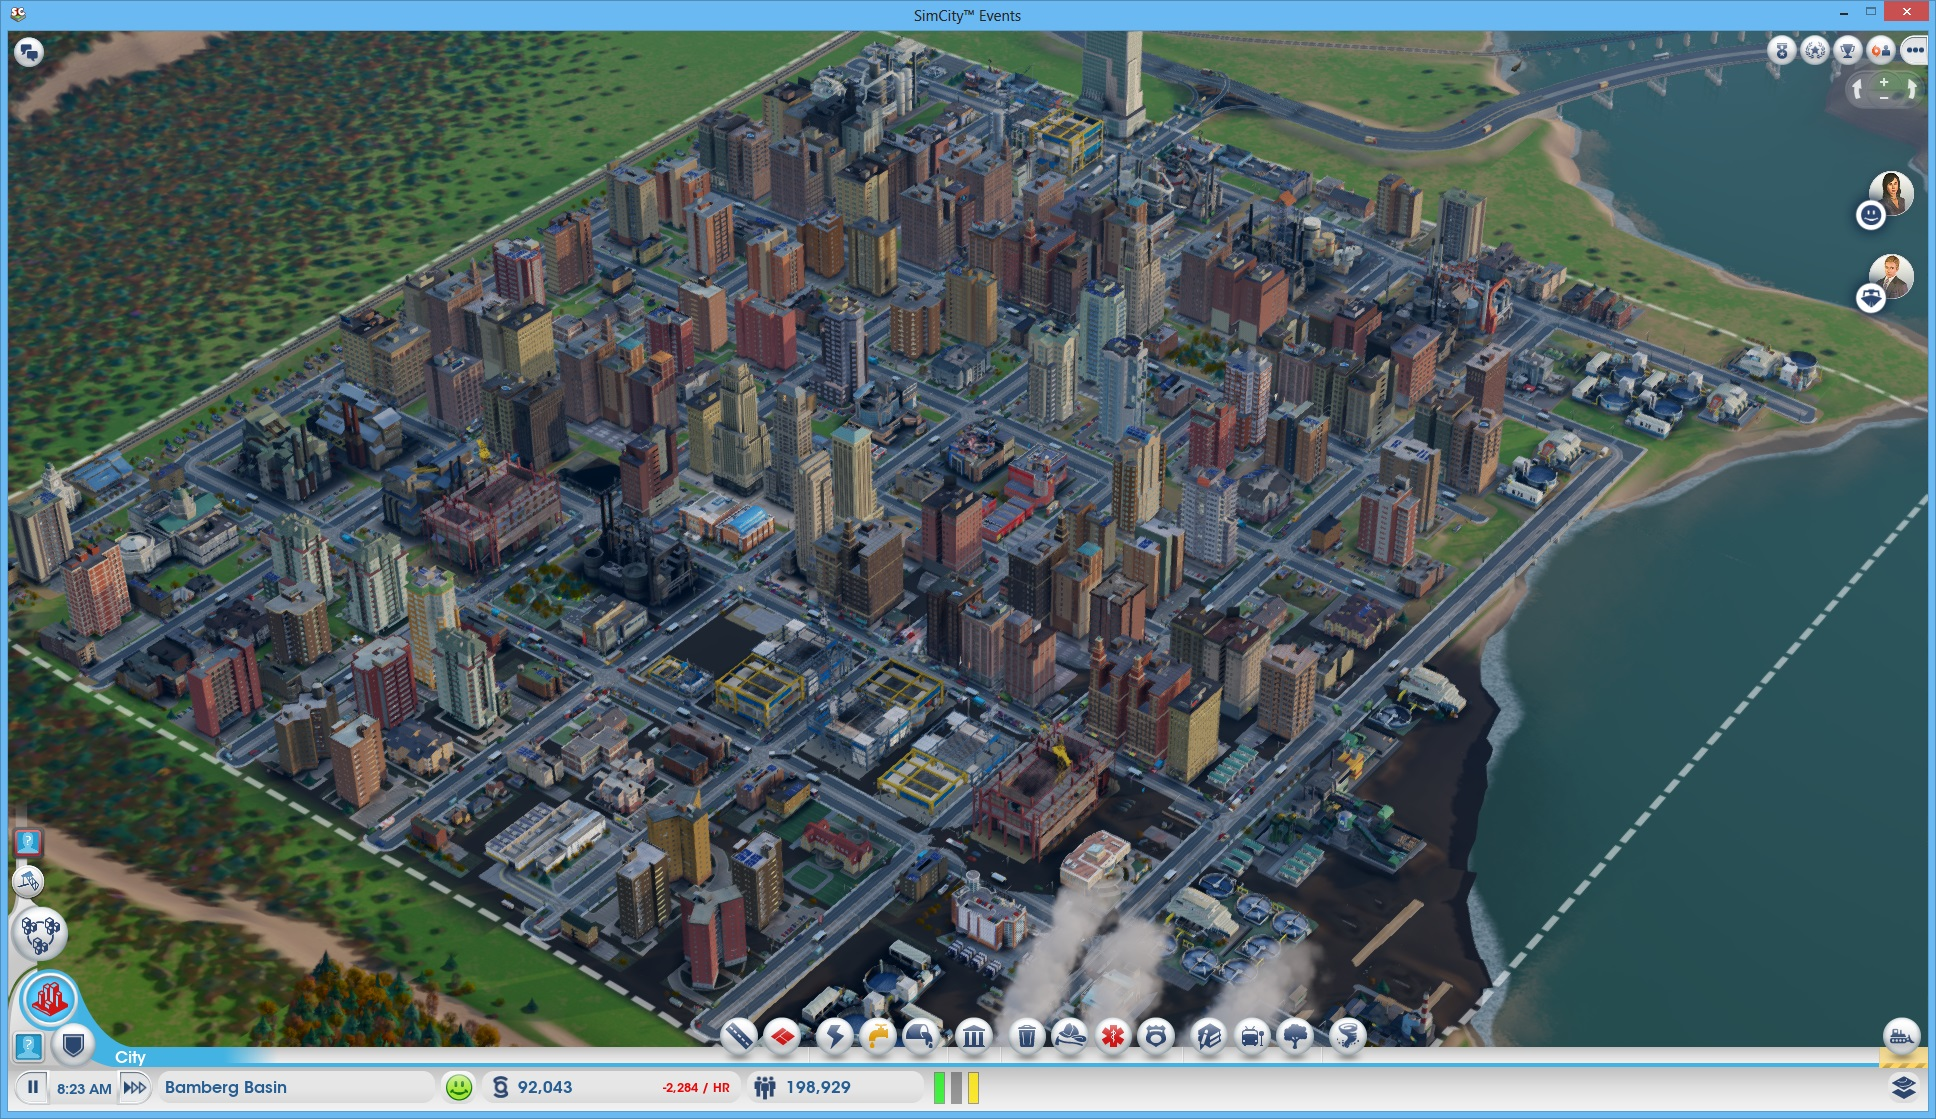 city-overview.jpg